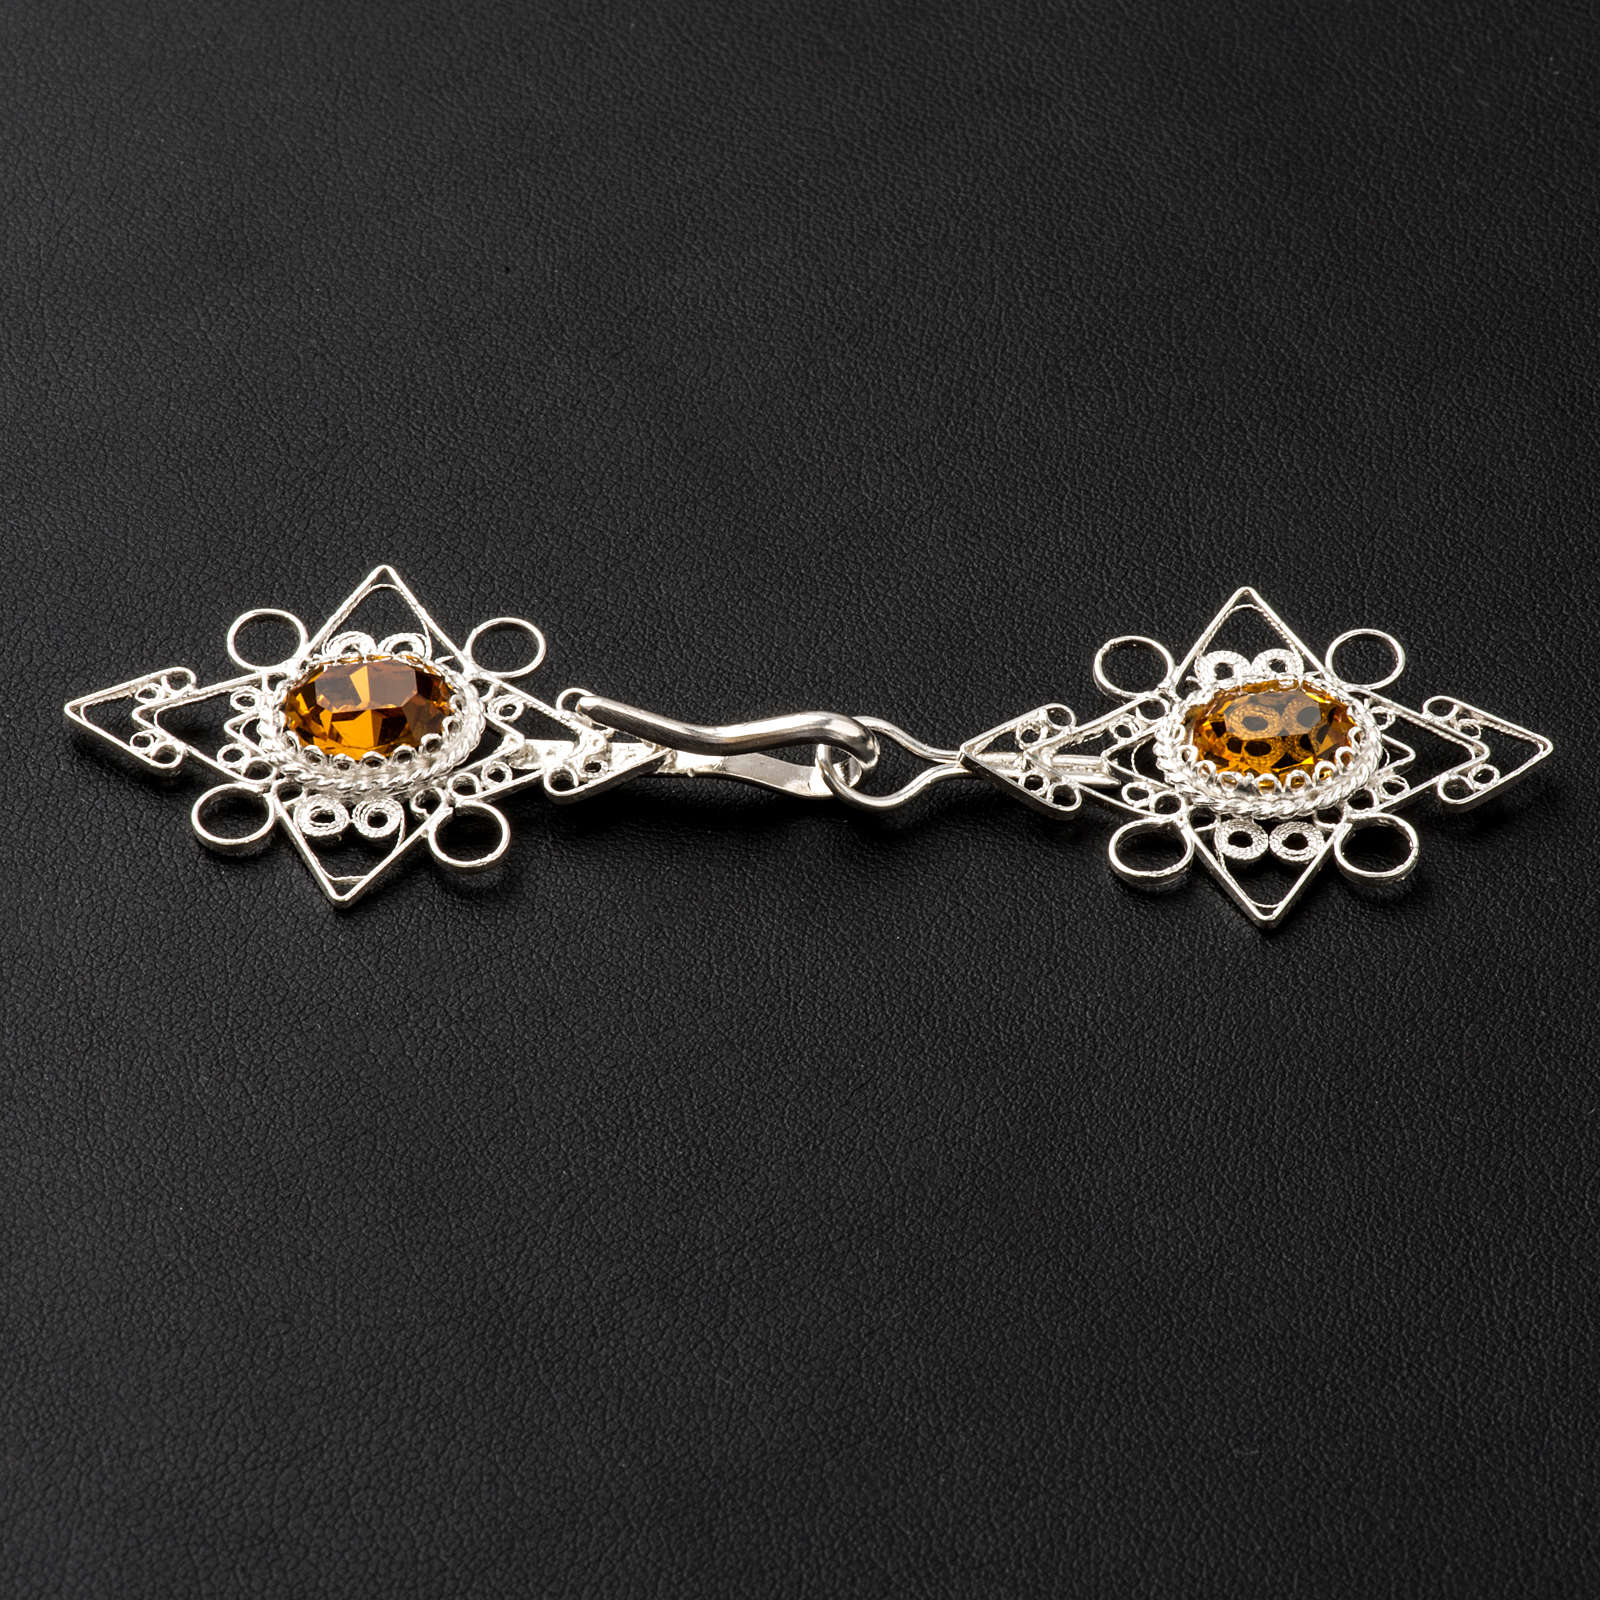 Cope Clasp, silver 800 with Carnelian 4